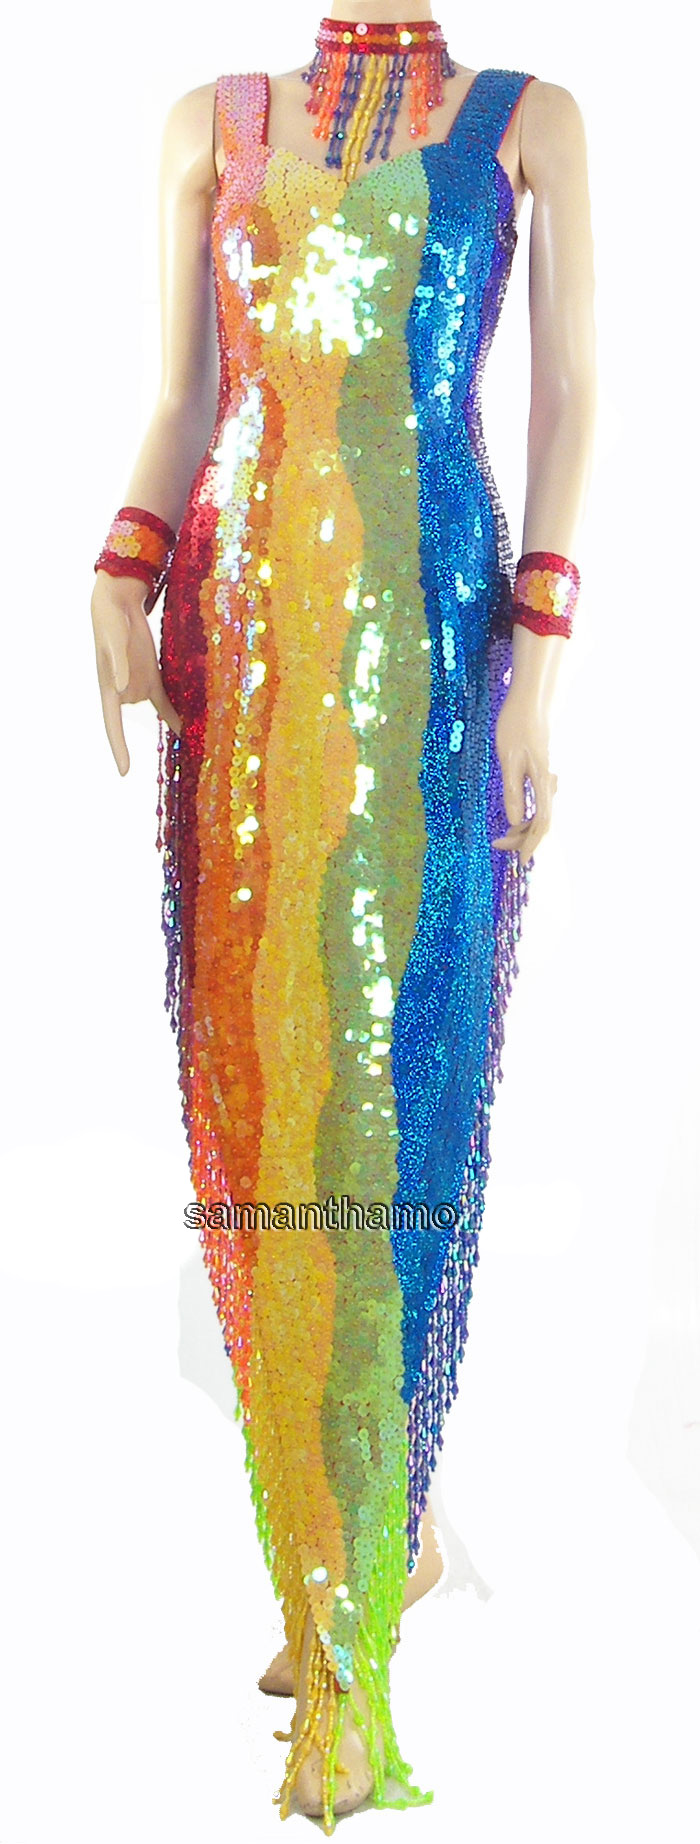 https://michaeljacksoncelebrityclothing.com/new-dress-designs/TM0912-sequin-rainbow-gay-pride-dance-dress.jpg